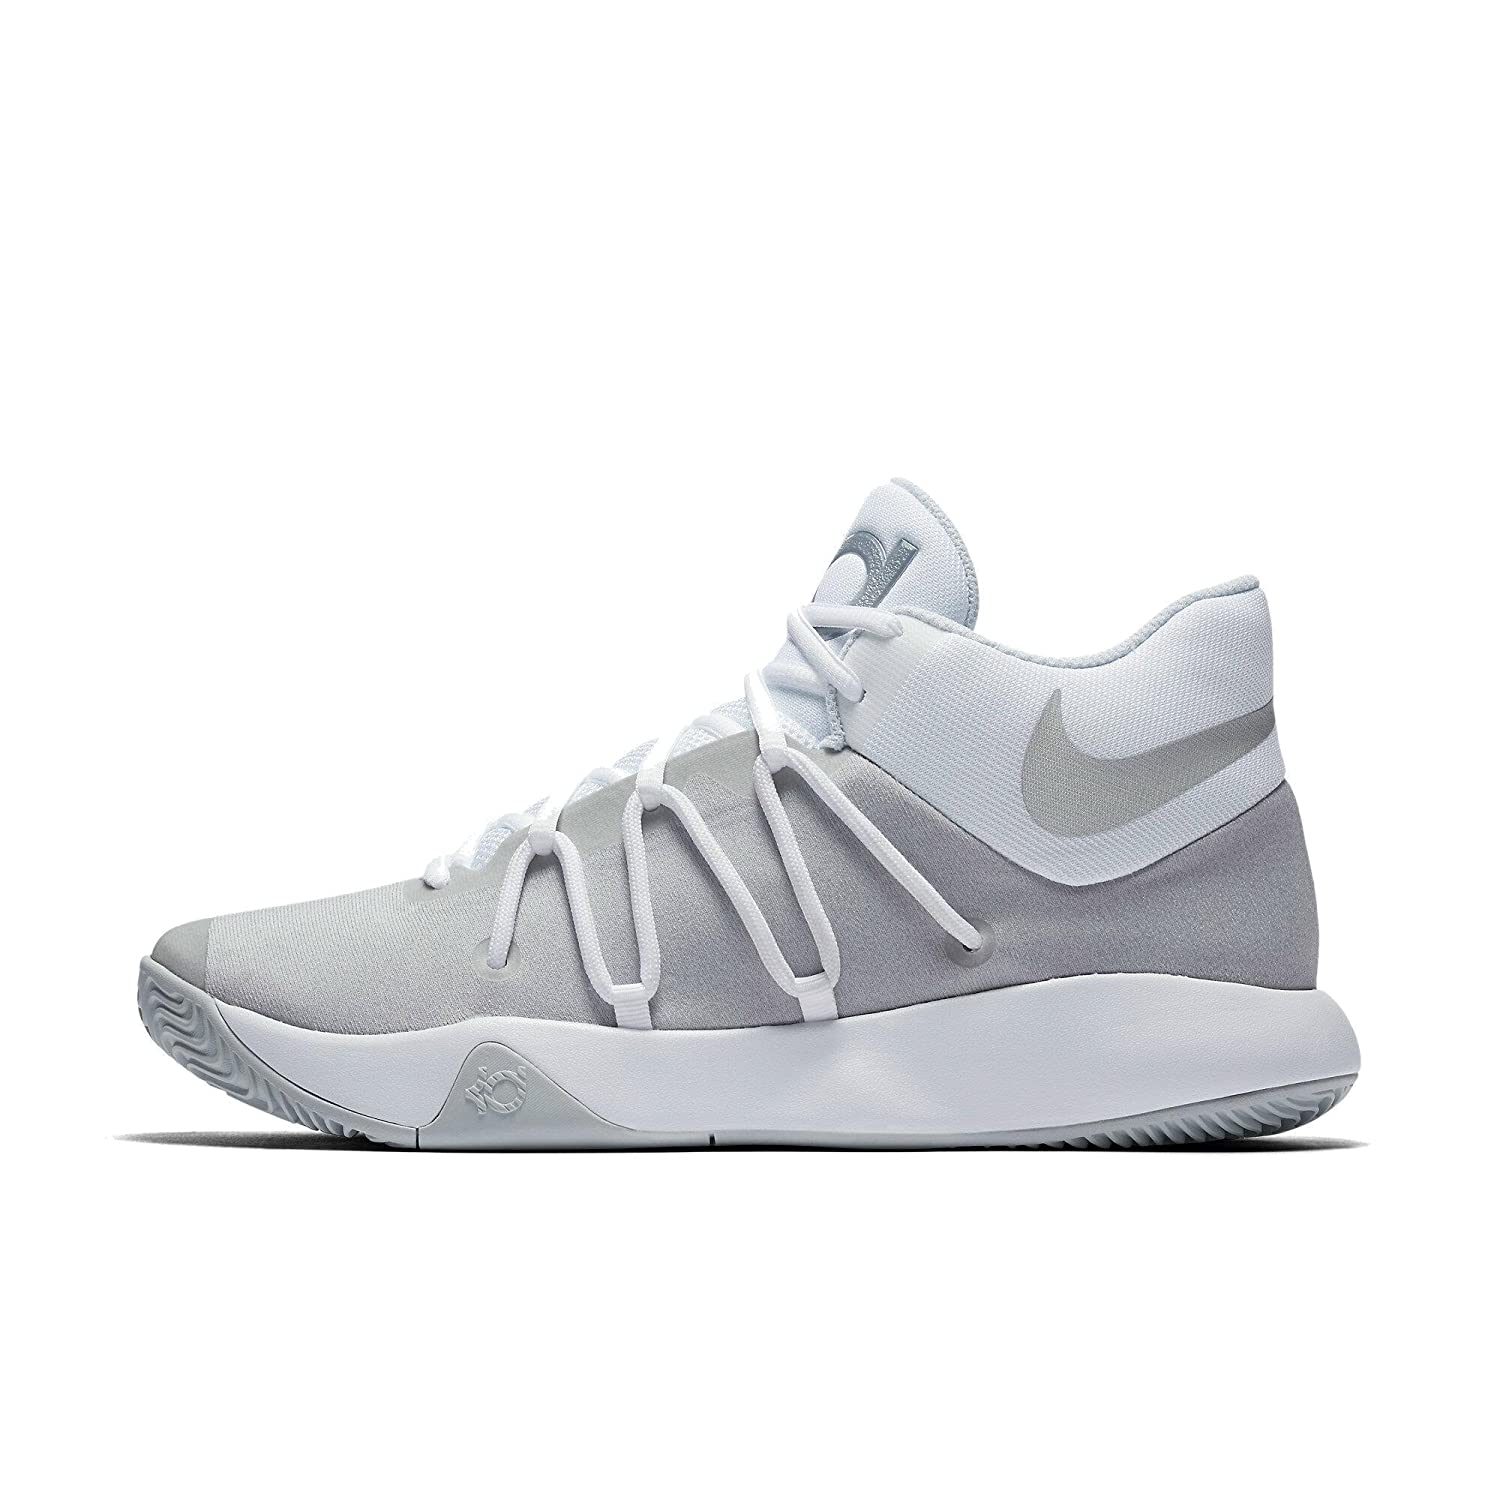 wholesale dealer 19704 e7316 Amazon.com   Nike Men s KD Trey 5 V Basketball Shoes (11.5, White Grey)    Basketball